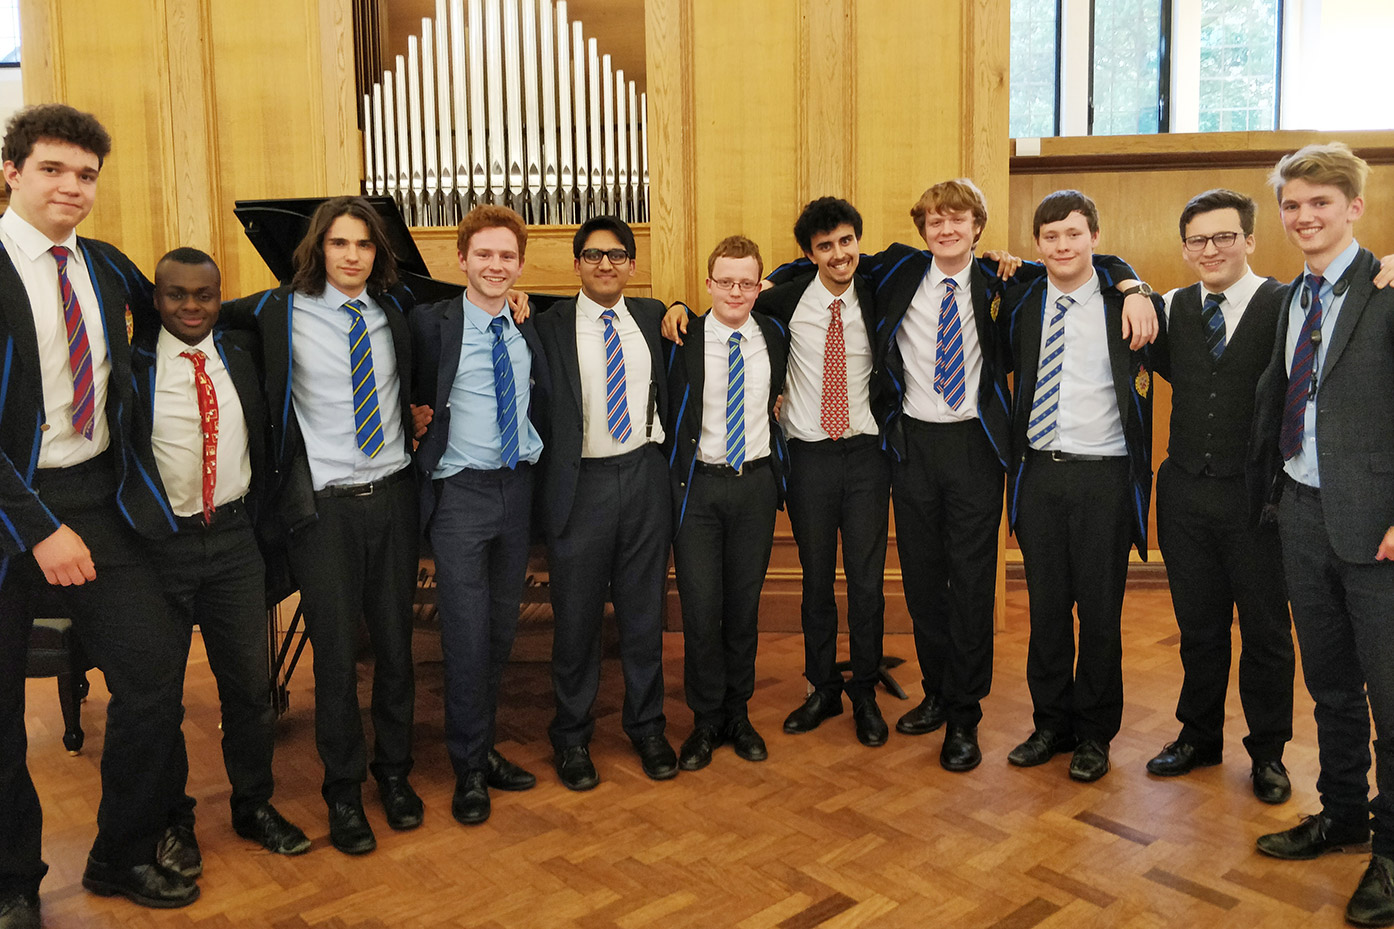 A memorable Leavers' Concert